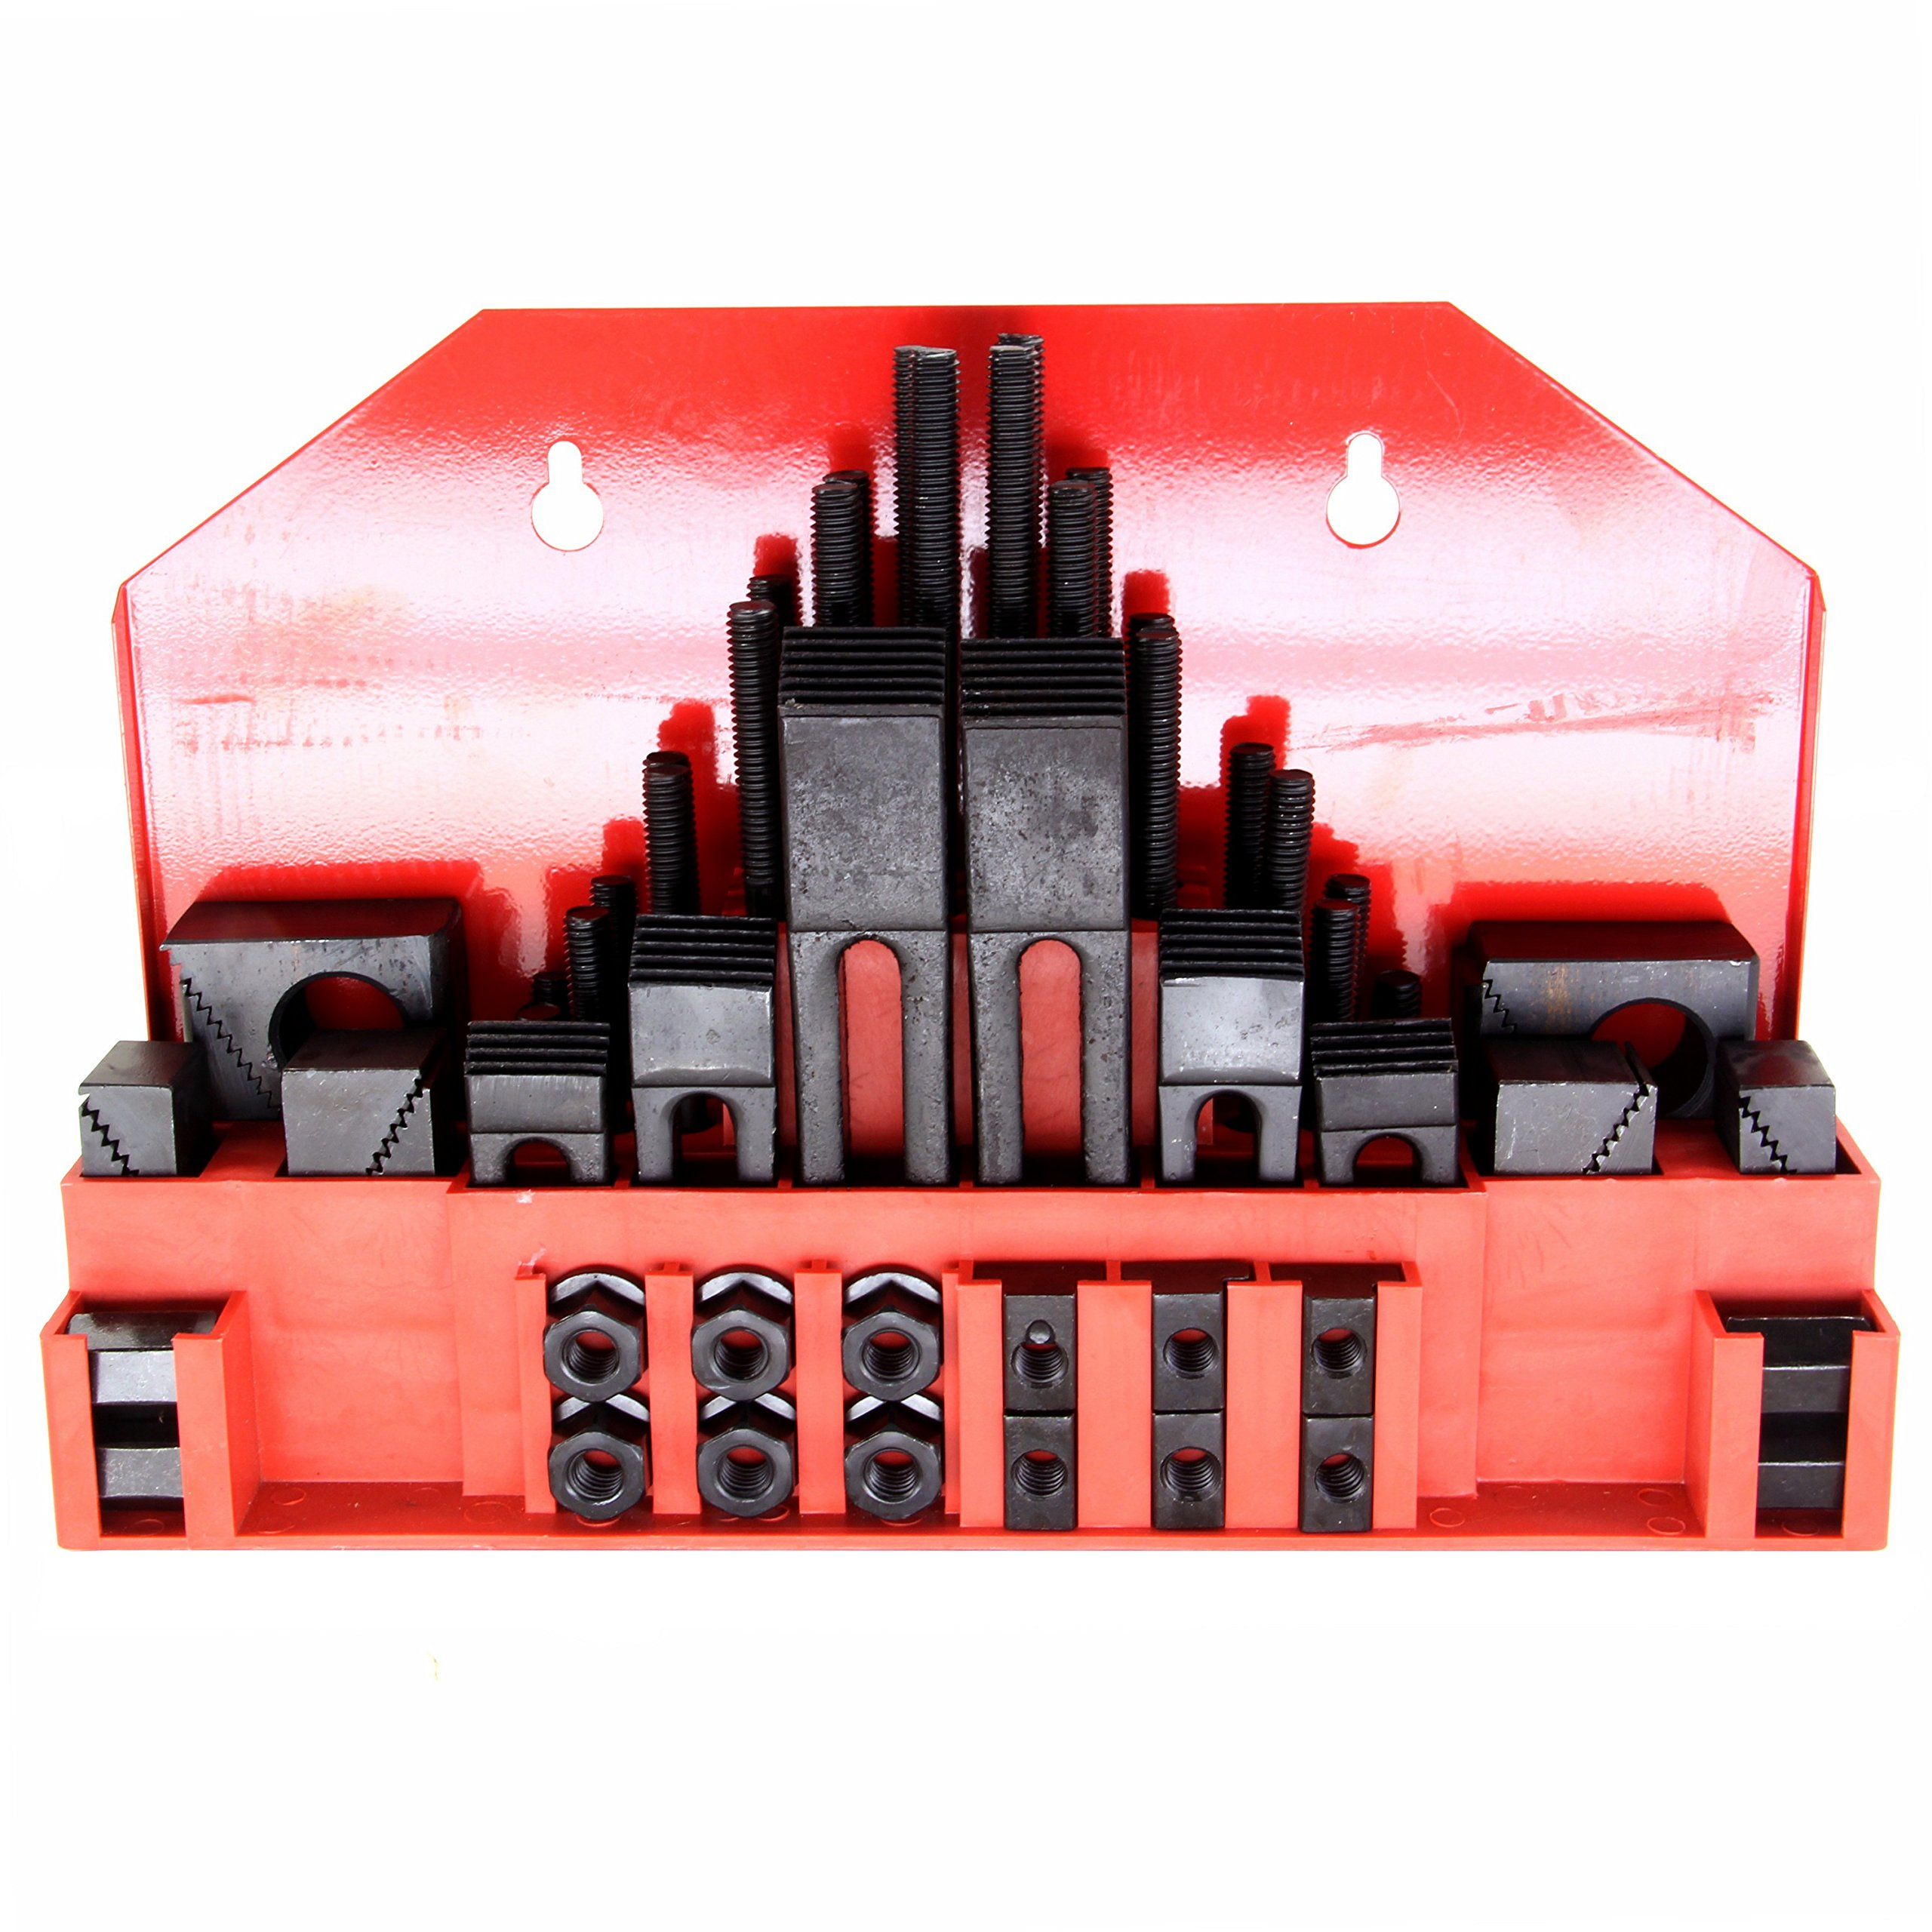 HFS (Tm) 52pc 11/16'''' Slot ,5/8''-11 Stud HOLD DOWN CLAMP CLAMPING SET KIT BRIDGEPORT MILL